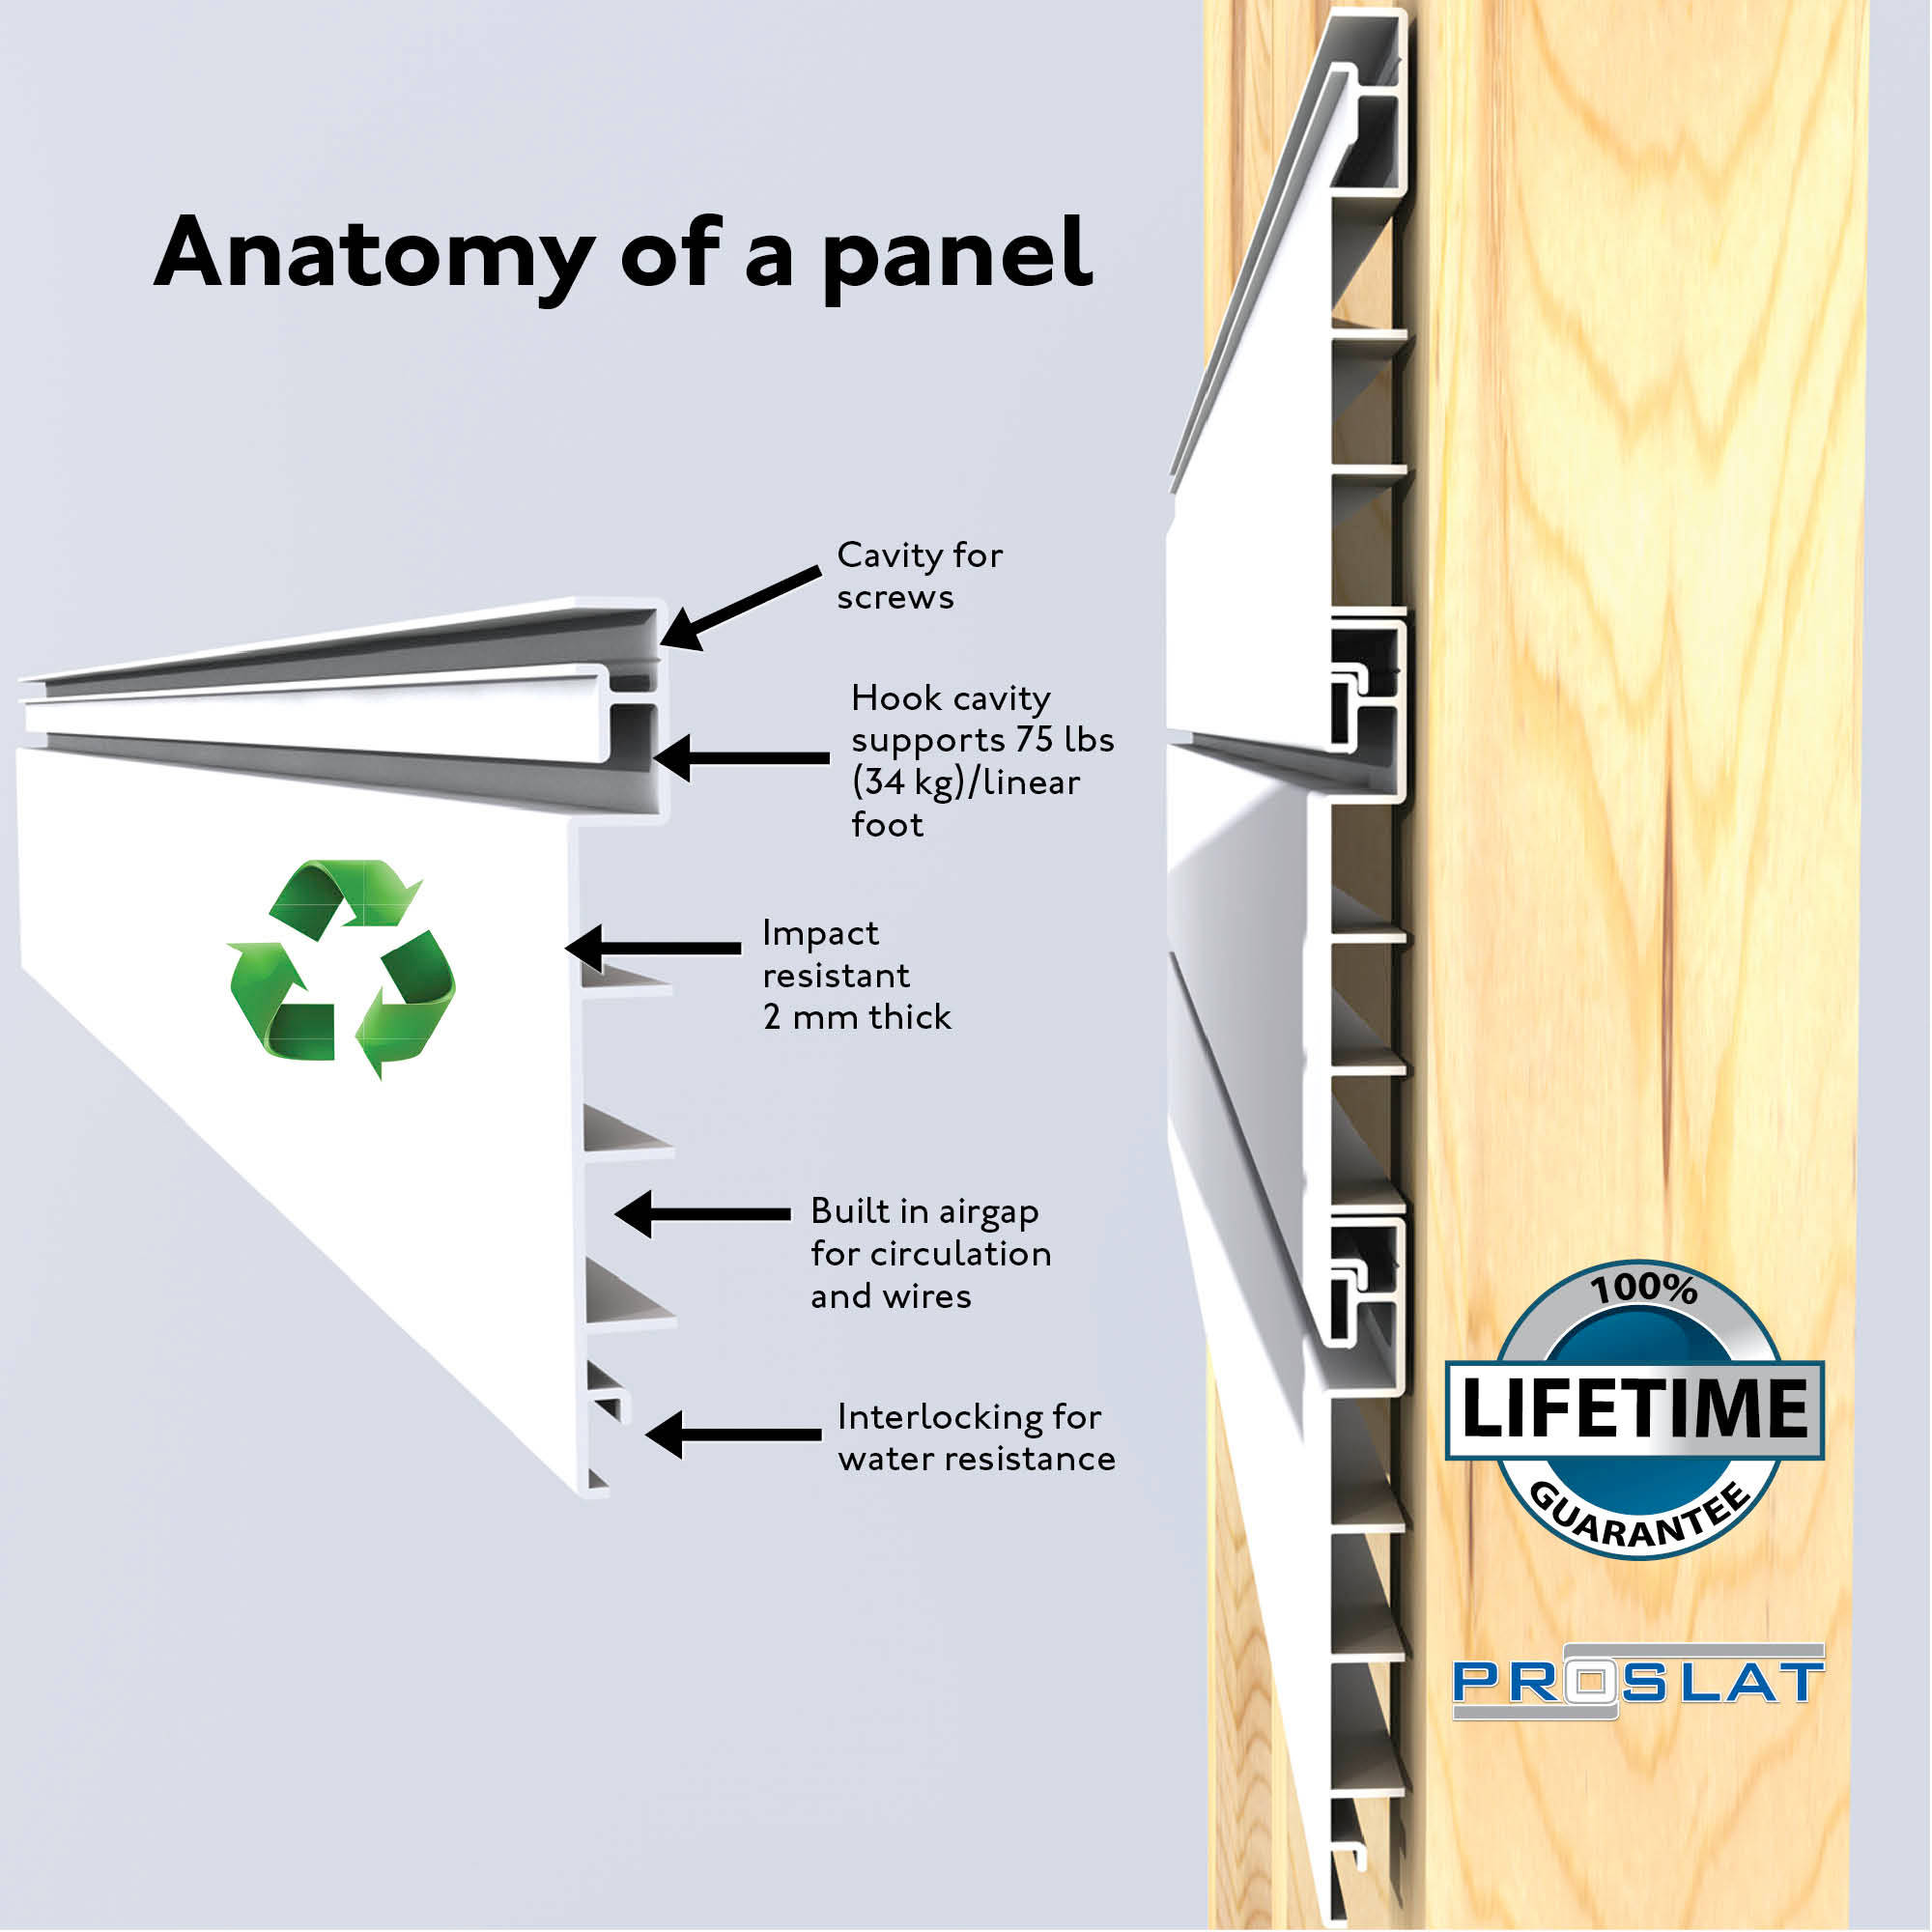 Each panel easily interconnects as you install from bottom panel up. No fasteners are seen making for a seamless, and functional garage wall!